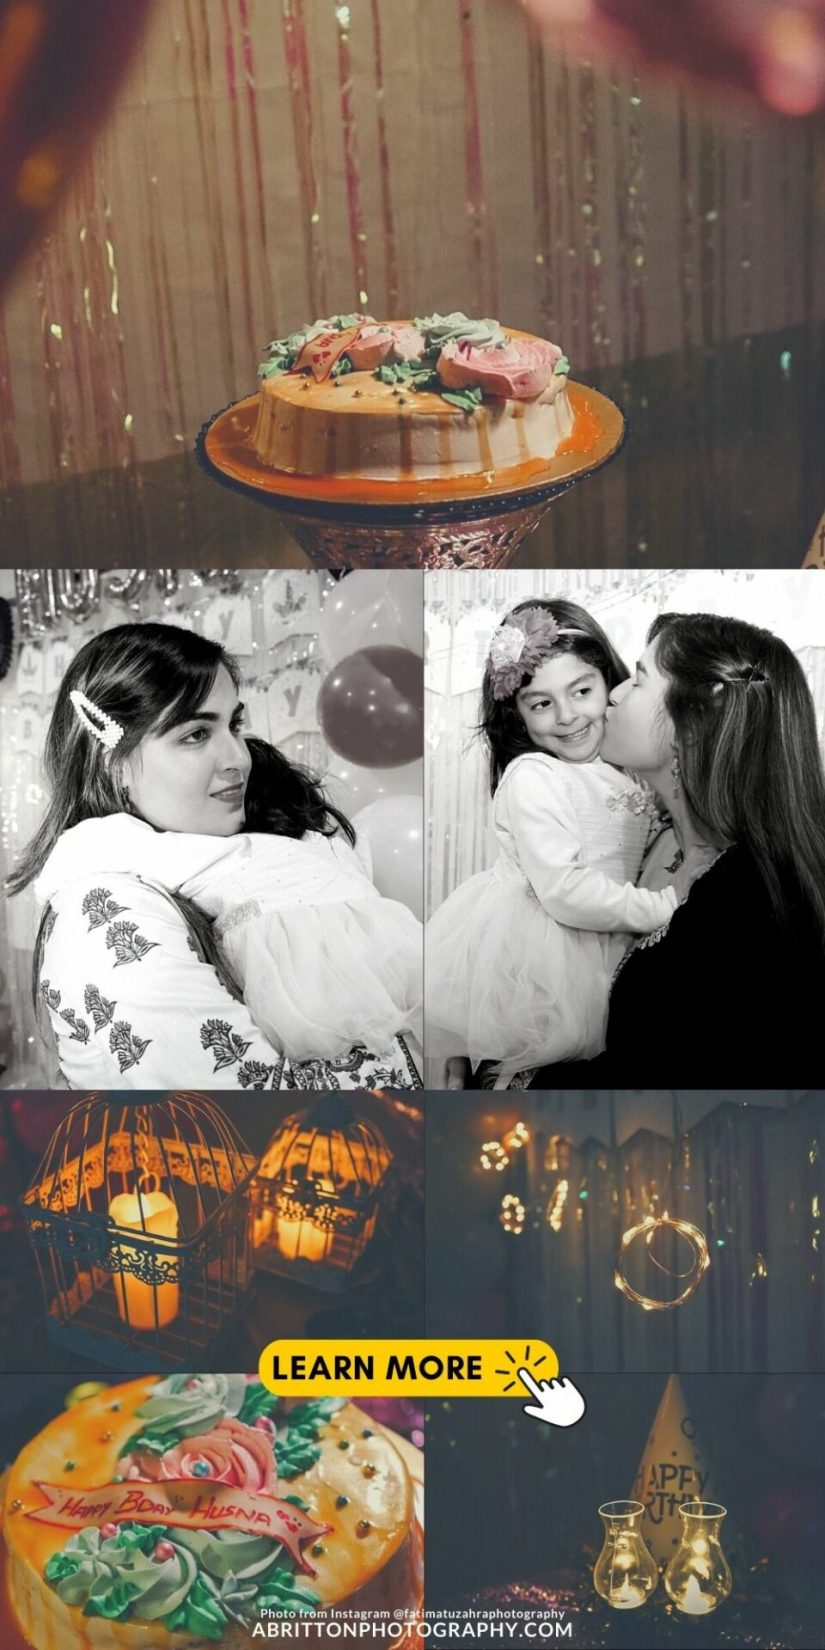 Guide How to Photoshoot Your Birthday Ideas and Poses